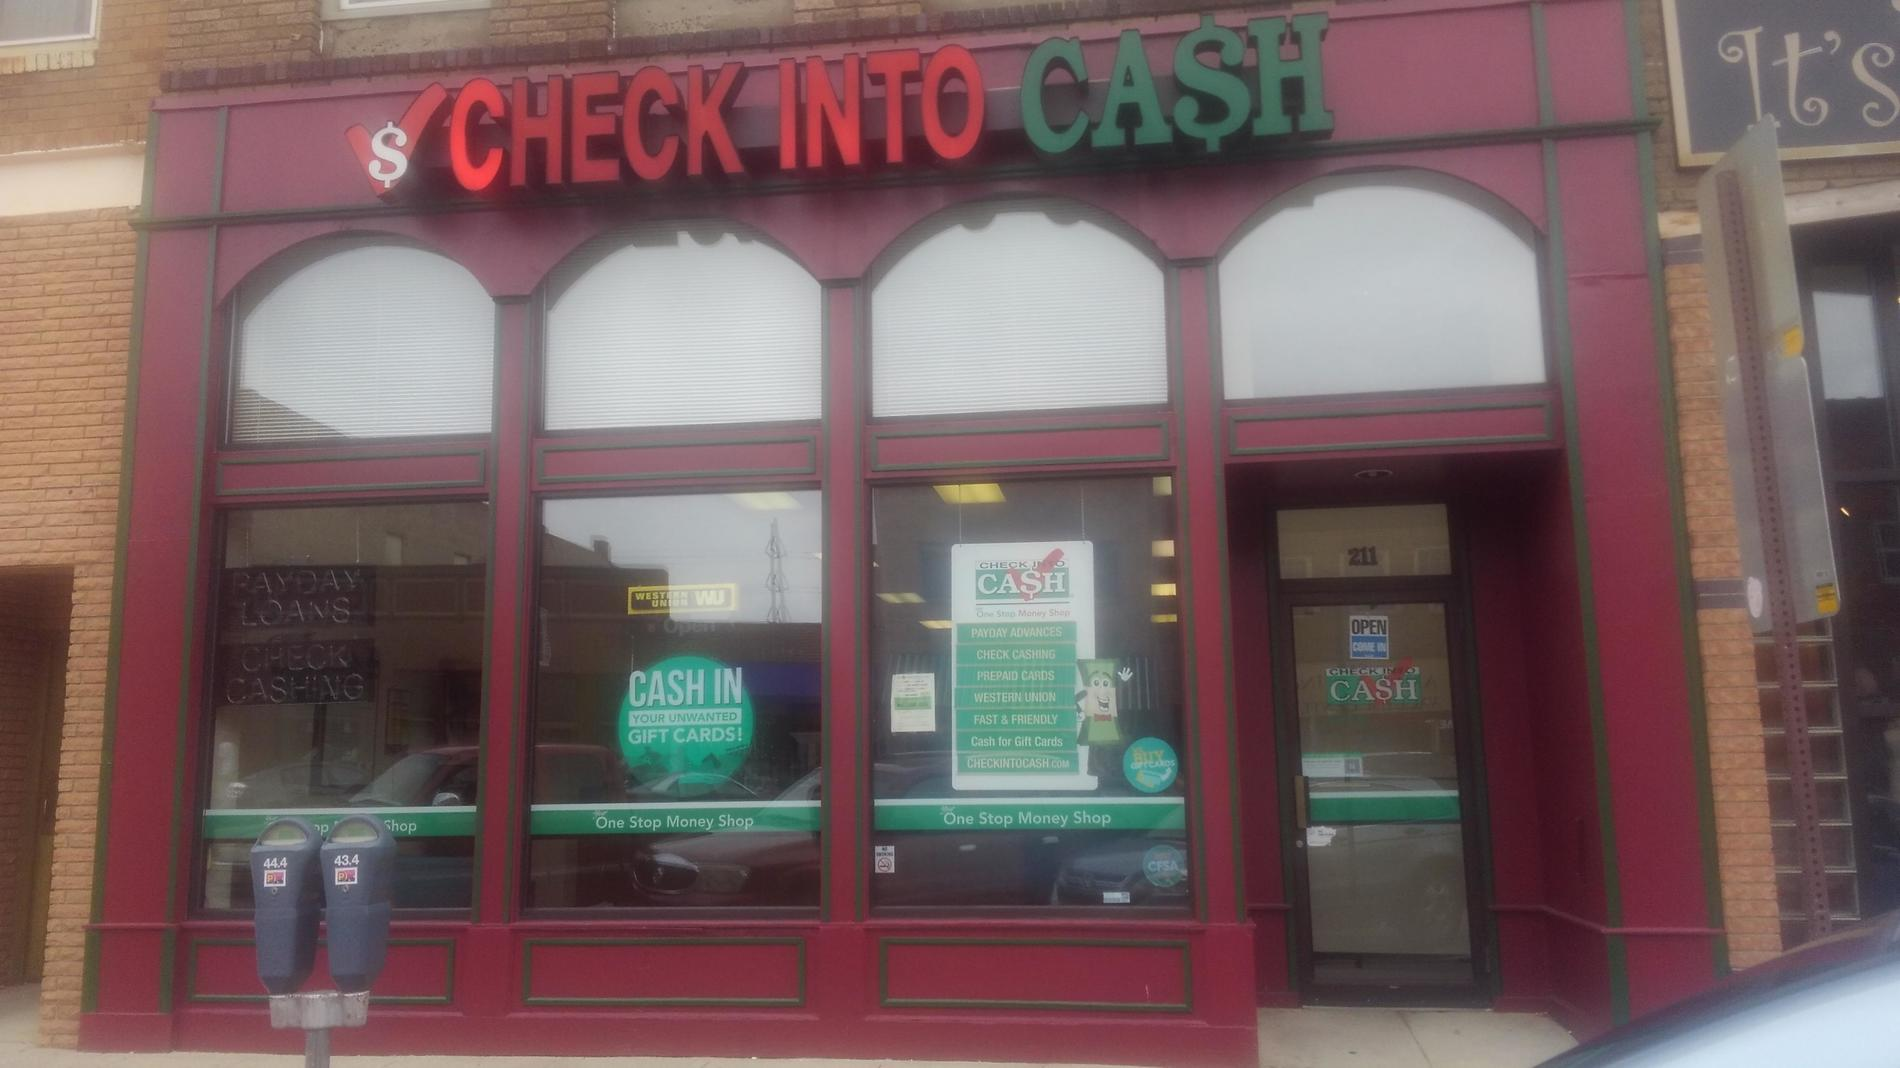 Payday loan money today image 2